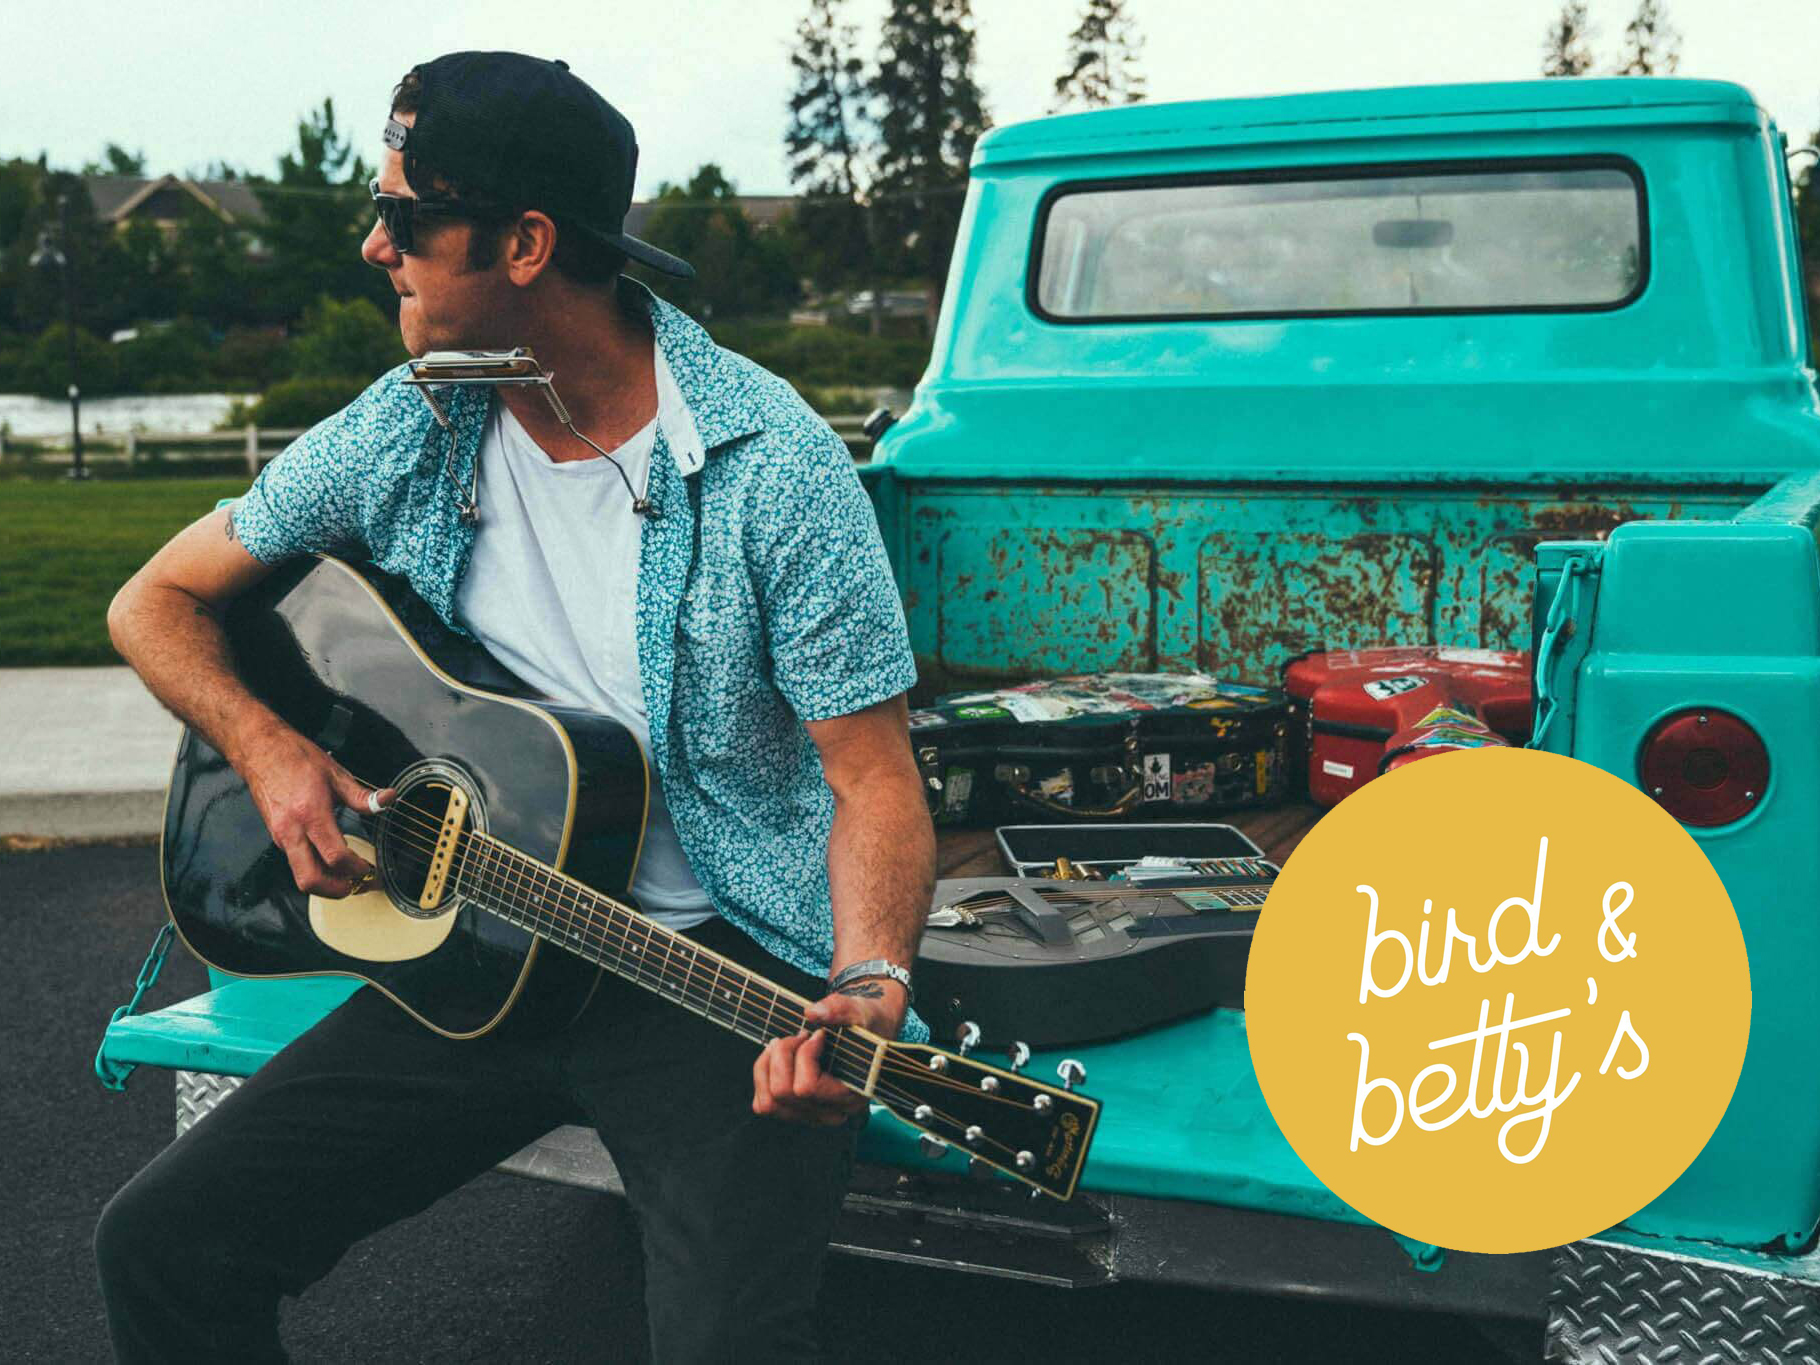 G lOVE RETURNS TO lbi ON JUNE 28 AND WE COULD NOT BE MORE EXCITED TO HAVE HIM AT bird & betty's to kick off the summer. Photo: The Good lIfe.